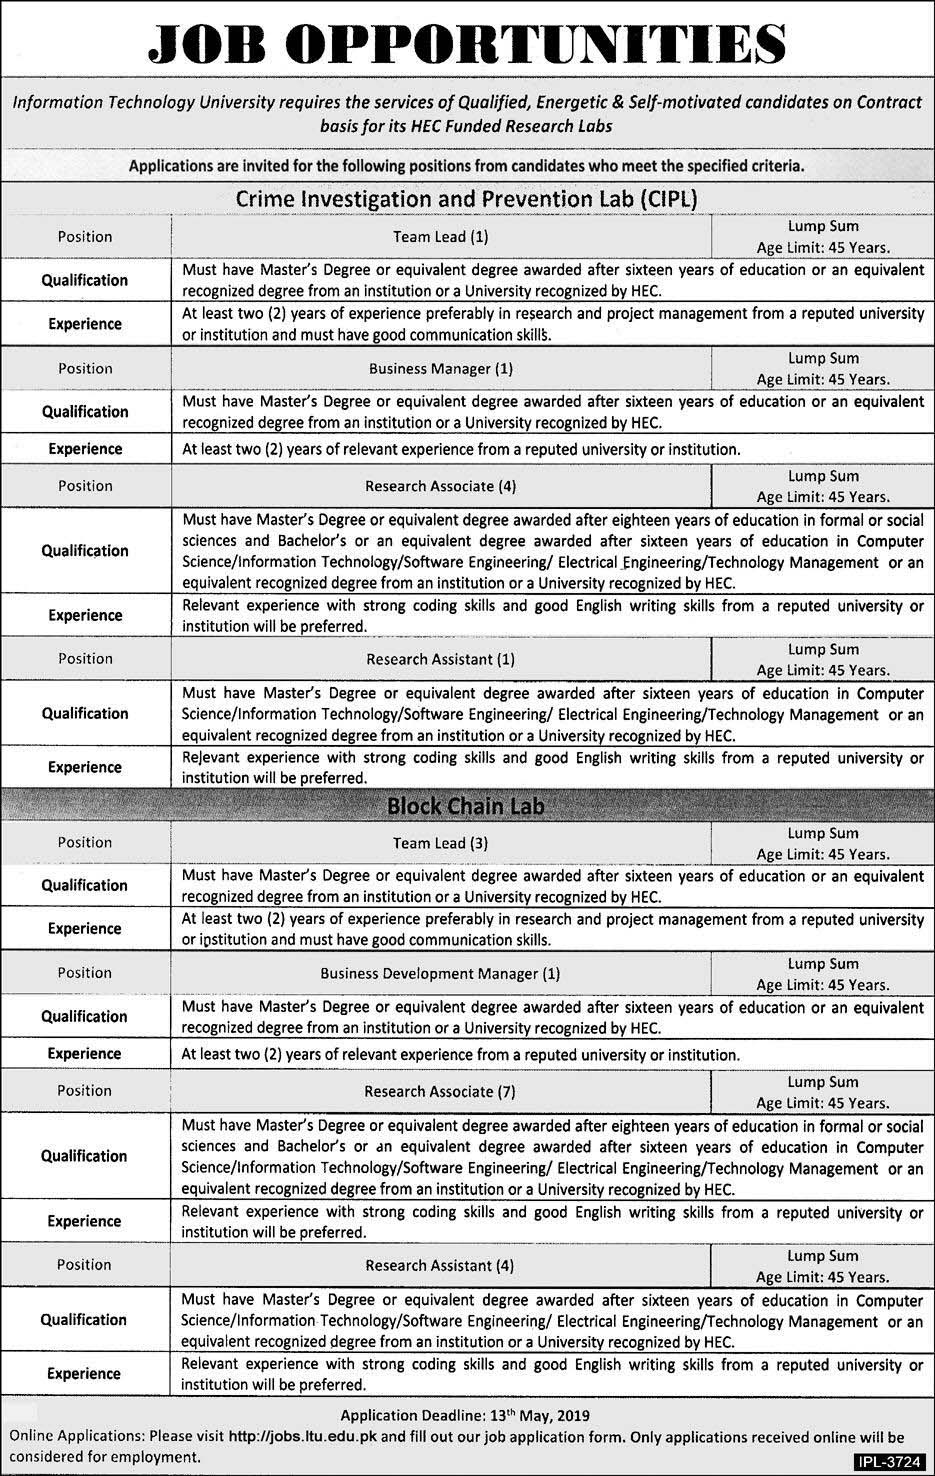 Jobs in Crime Investigation & Prevention Lab (CIPL) 25 April 2019